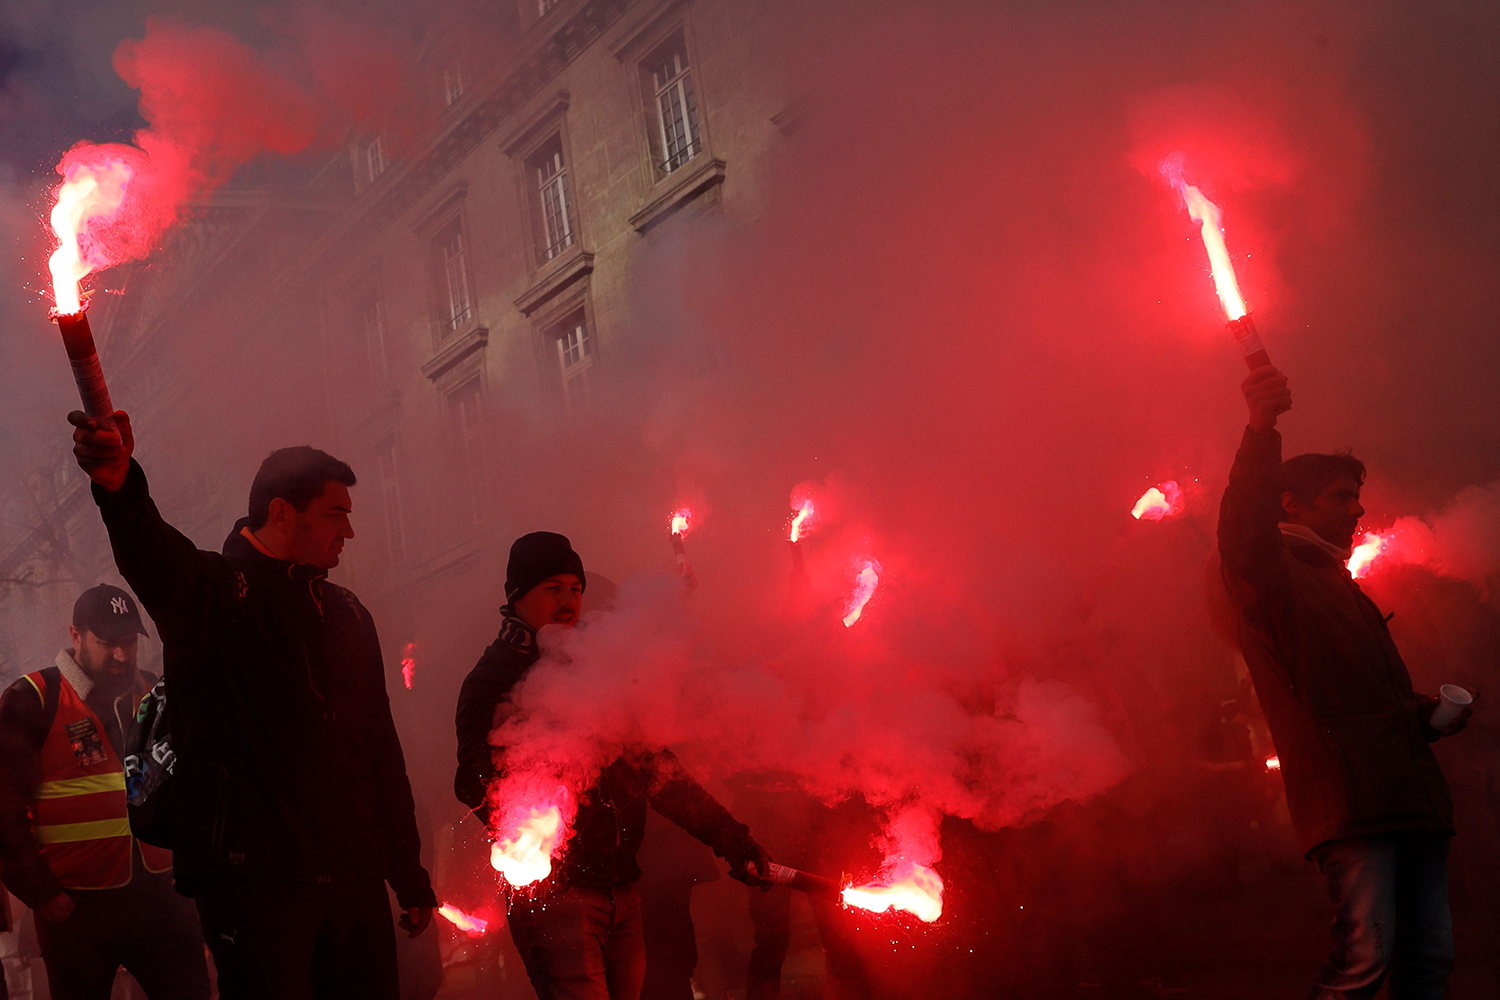 Protesters hold burning flares  during a demonstration against the French government's plan to overhaul the country's retirement system in Paris on Feb. 6. THOMAS SAMSON/AFP via Getty Images